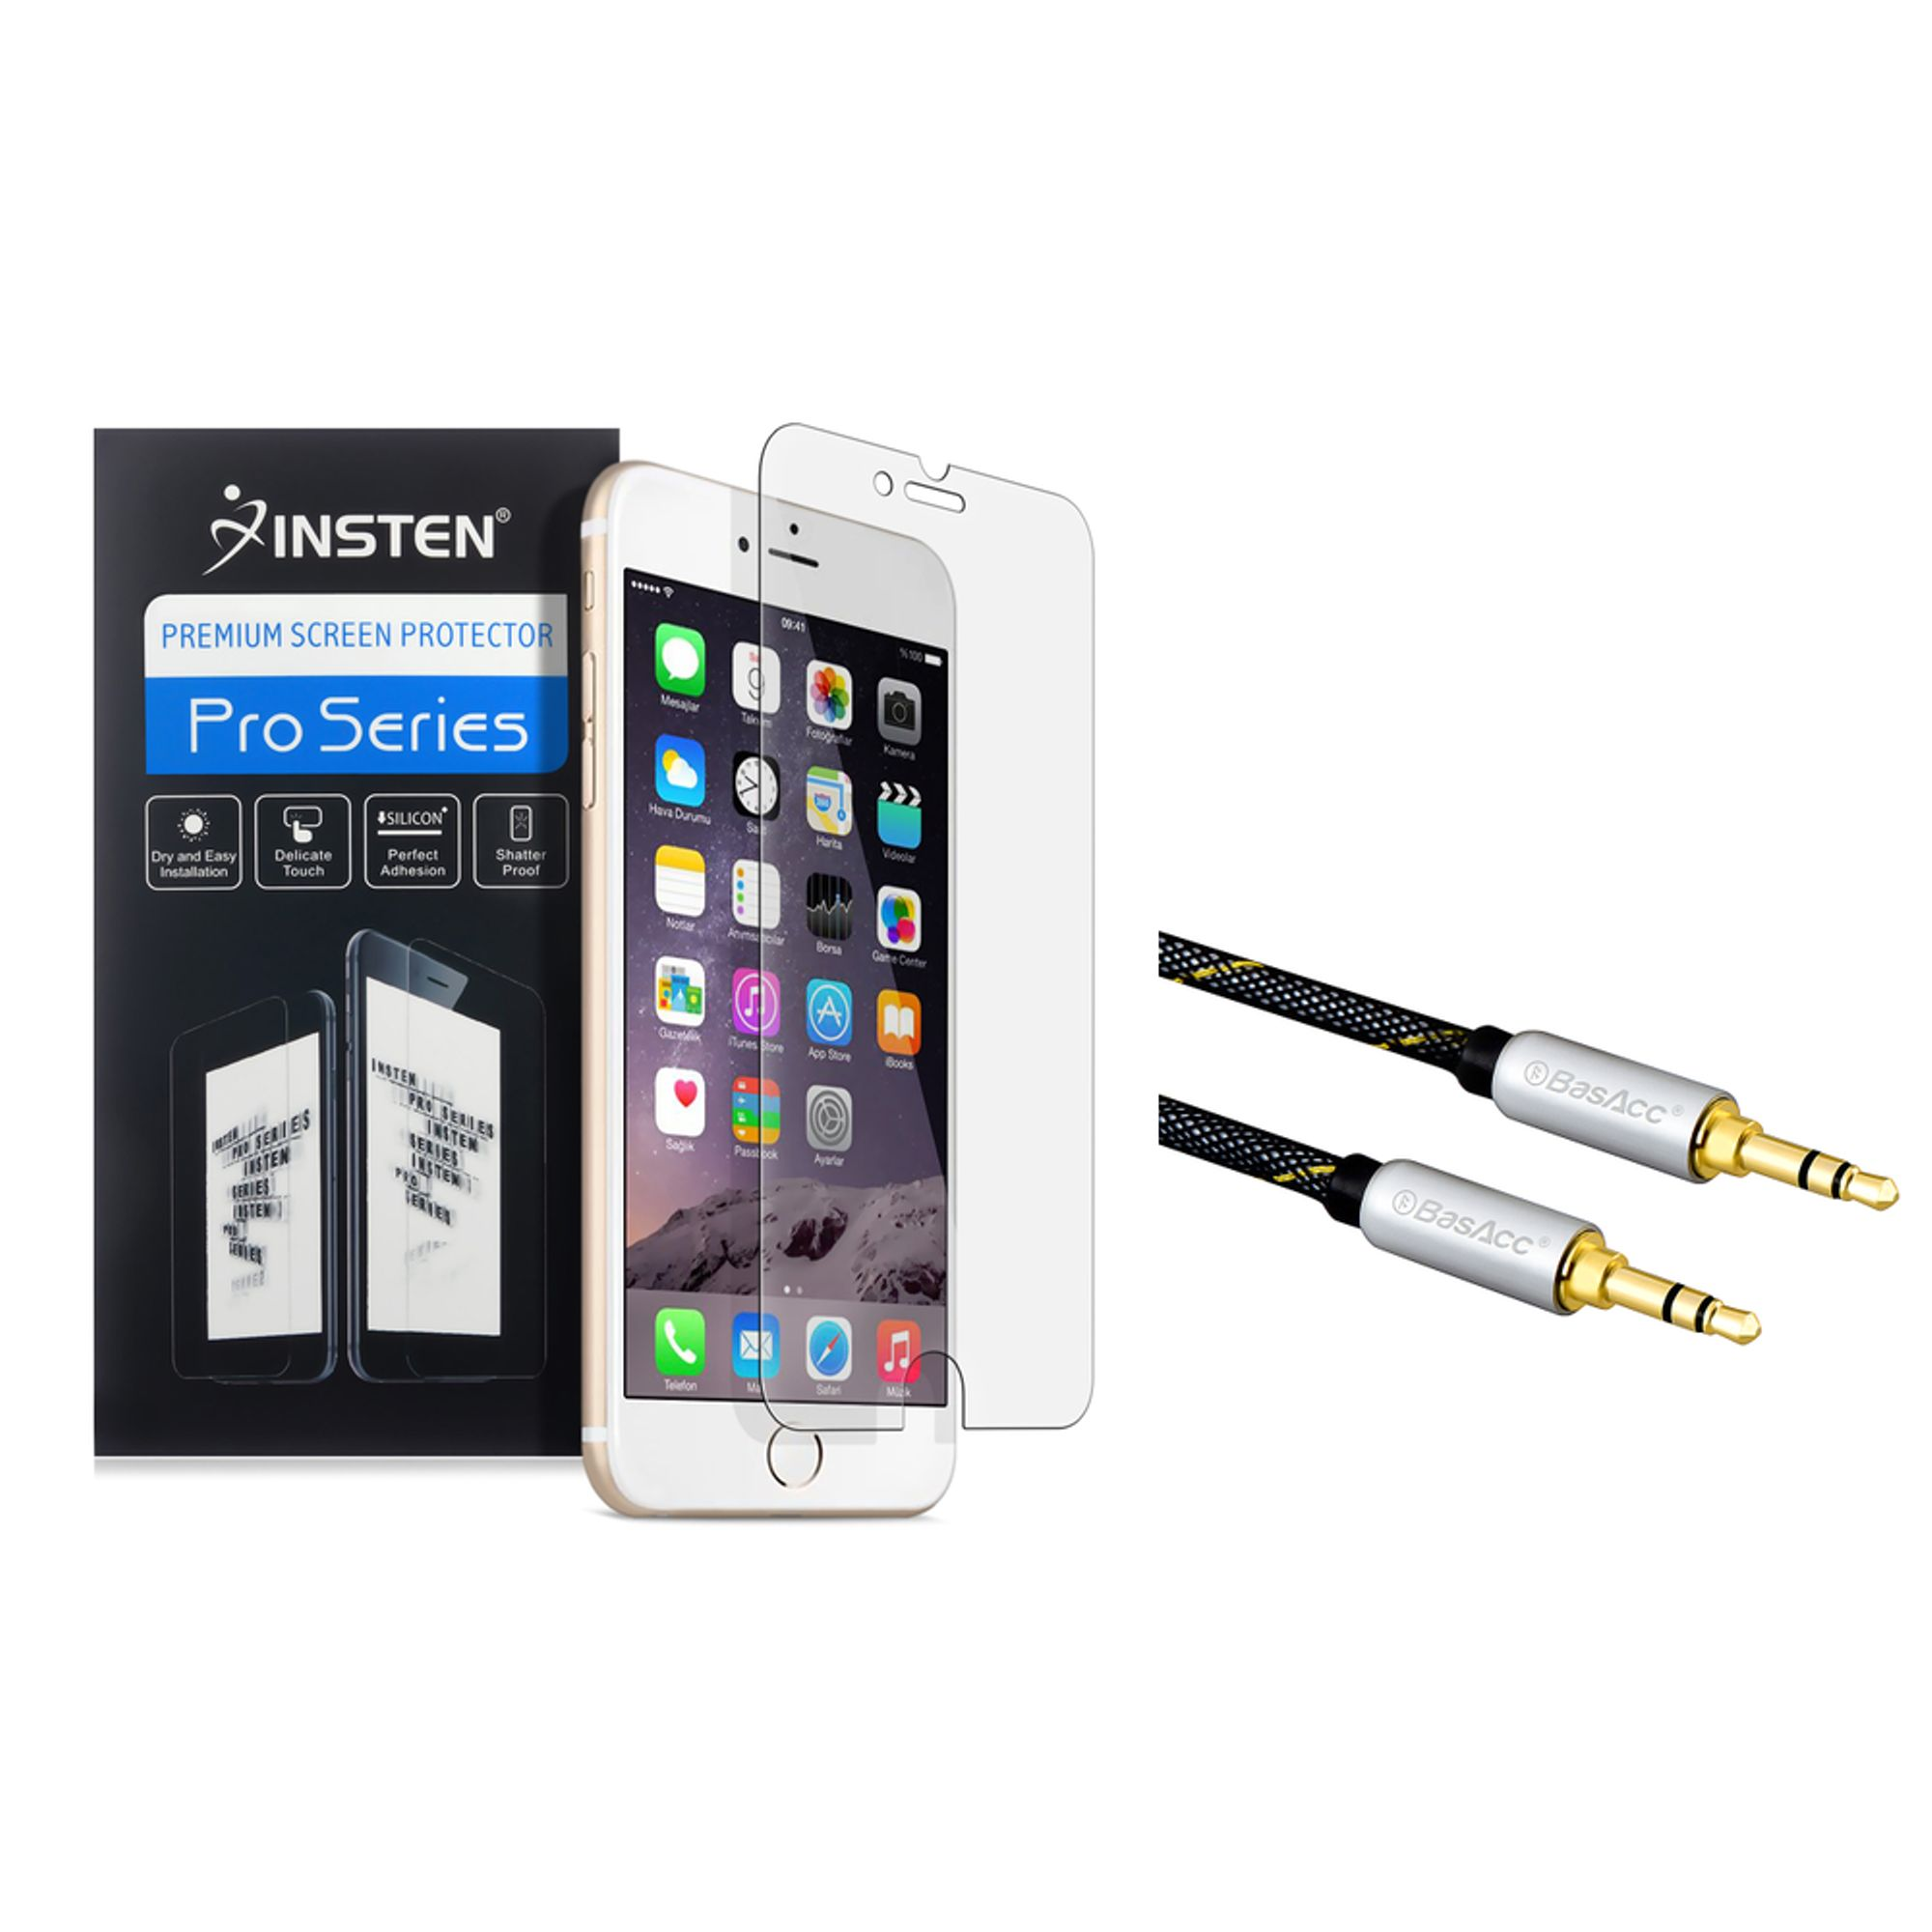 "Insten 3x Anti Glare Screen Protector For iPhone 6 Plus / 6S Plus 5.5"" (with 3.5mm Audio Extension Cable M/M) (2-in-1 Accessory Bundle)"